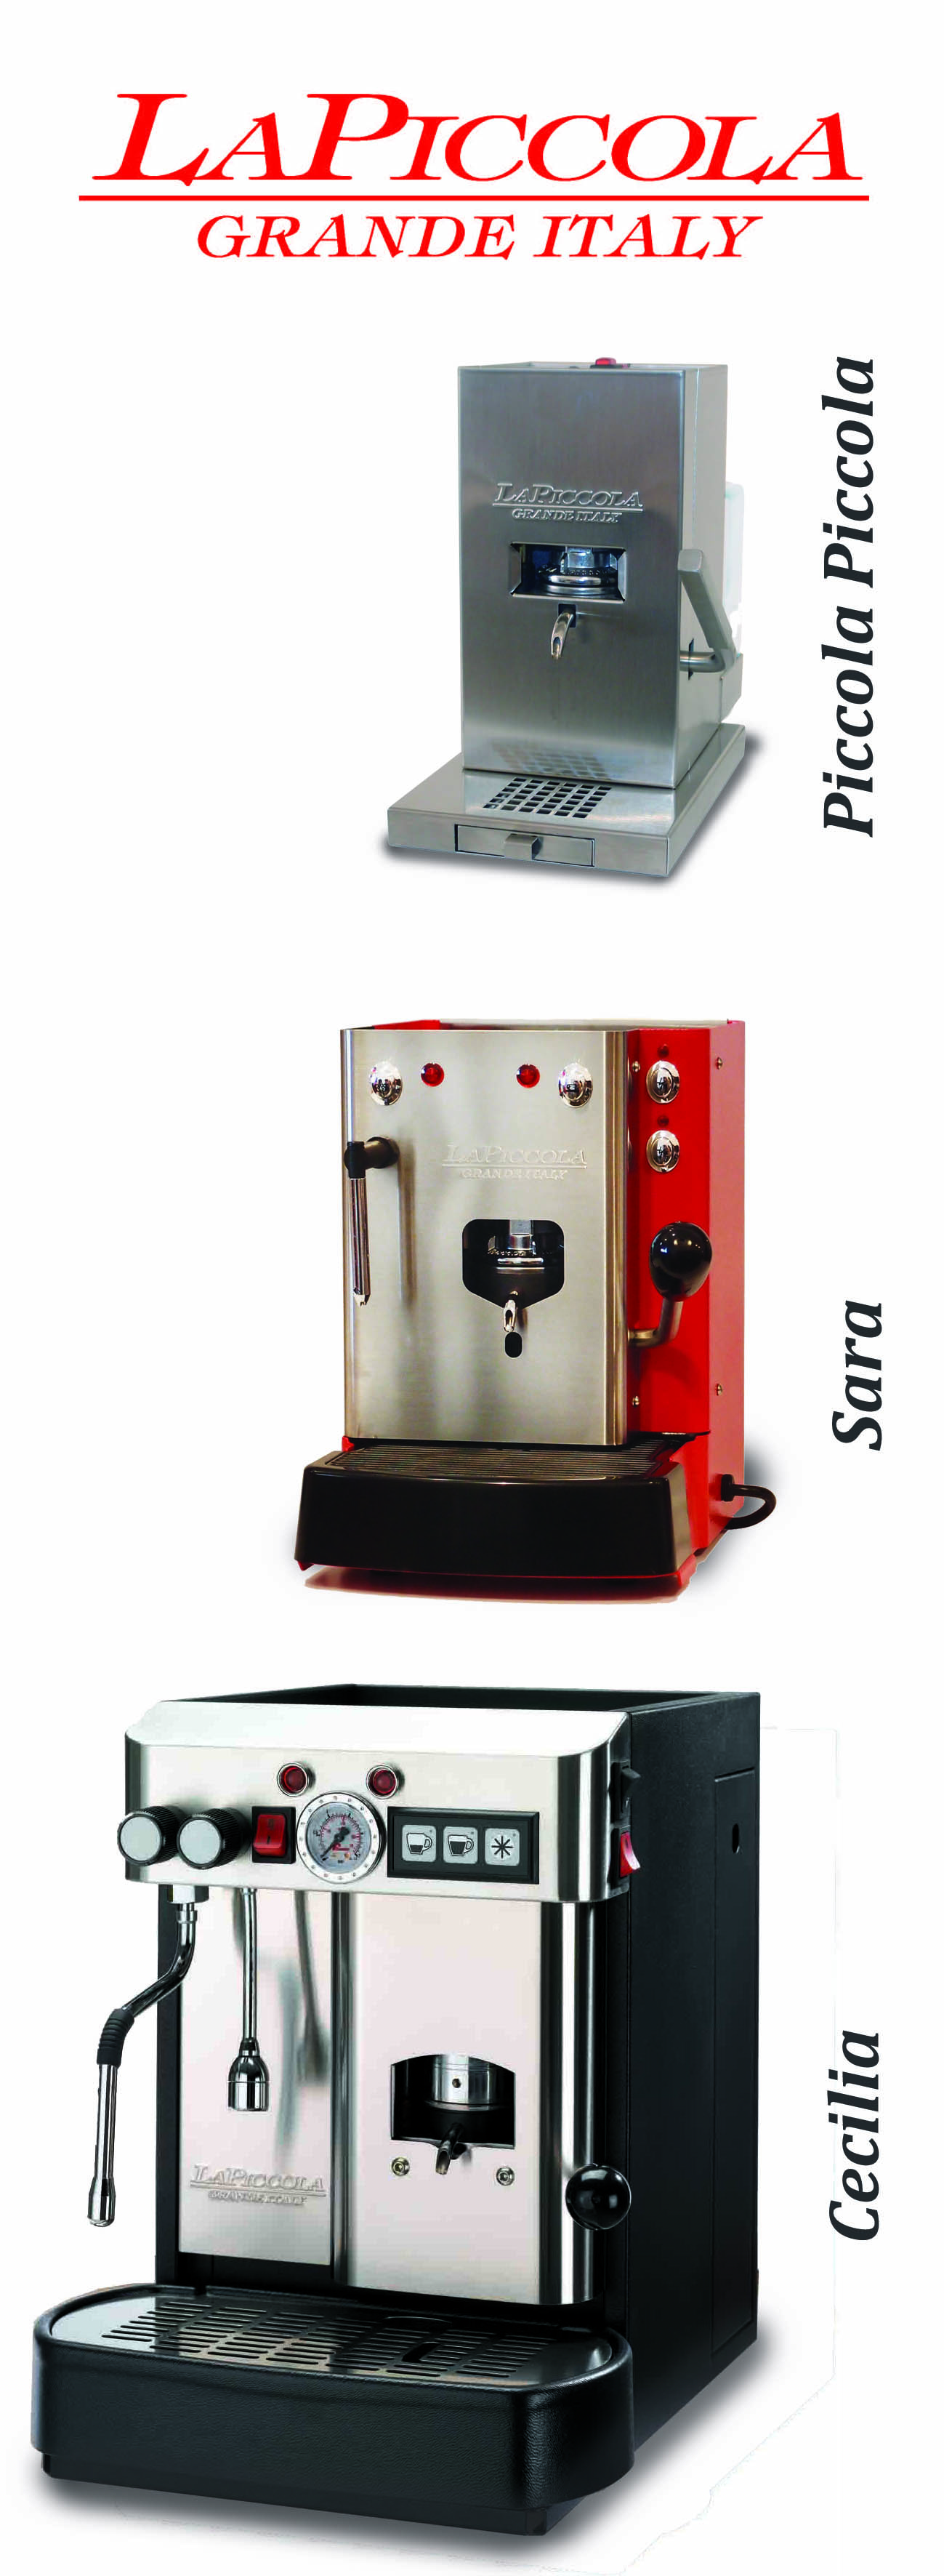 La Piccola ese coffee pod machine range